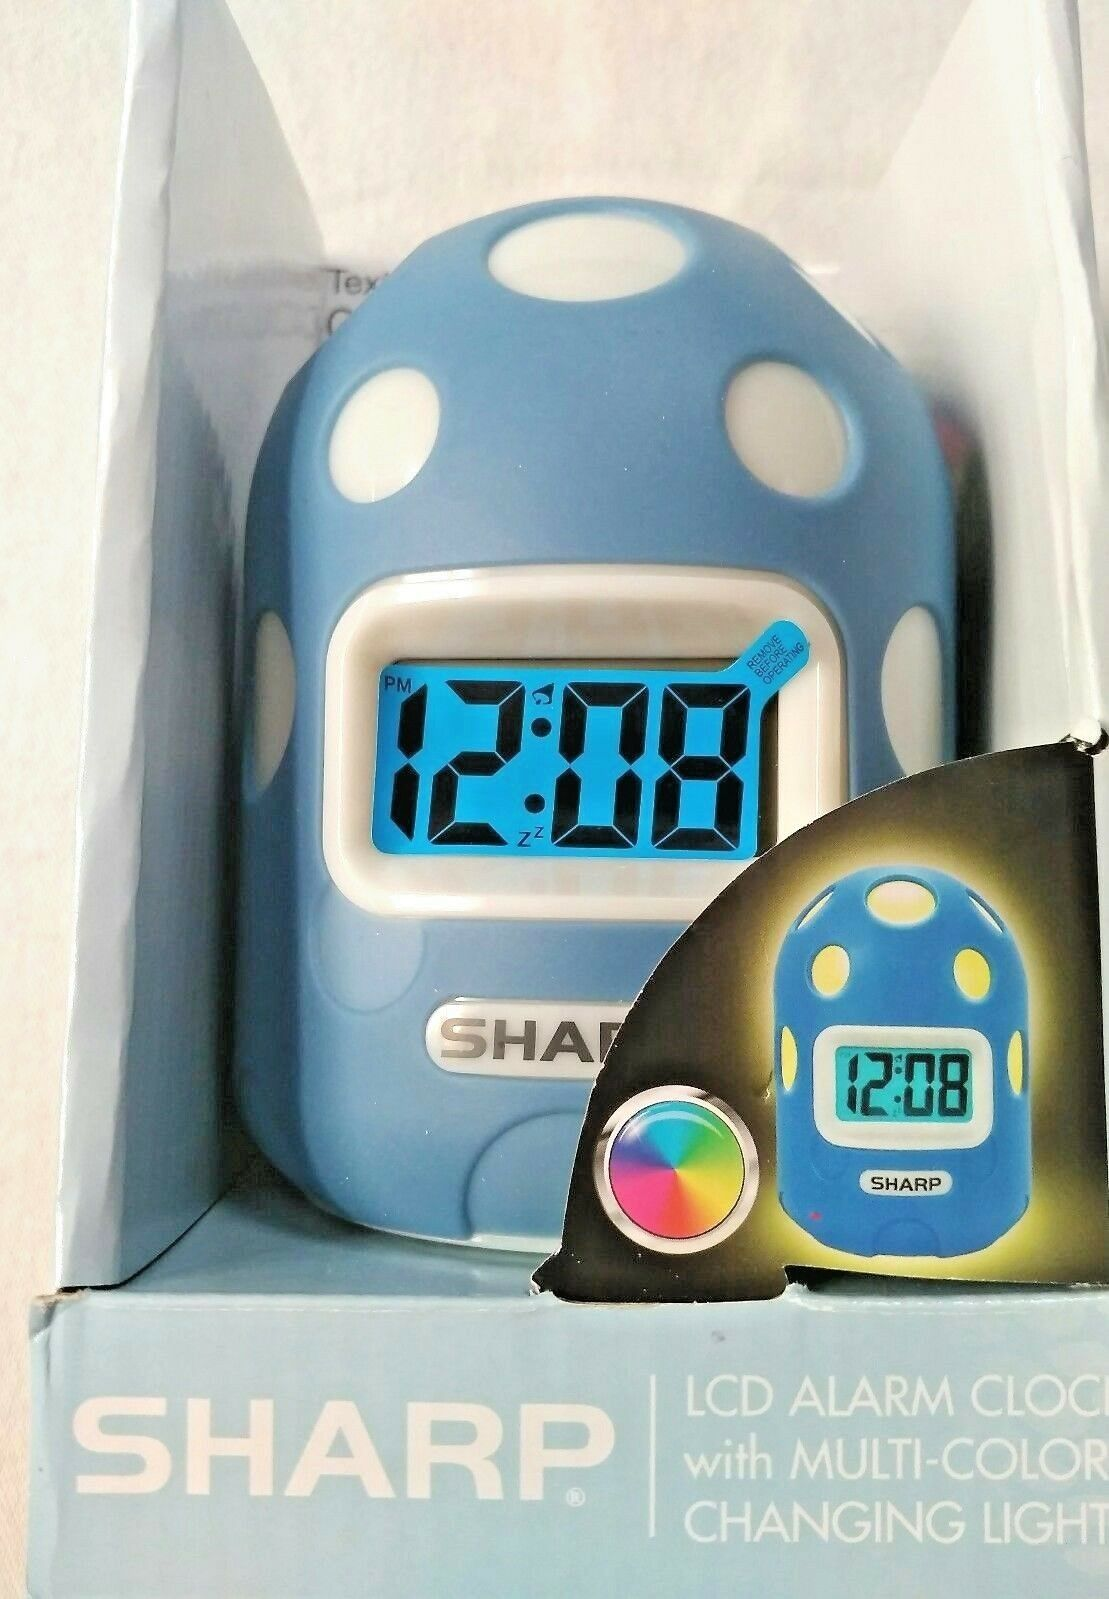 Clock Sharp Textured Case Color Changing Alarm light Battery Backup Snooze LCD